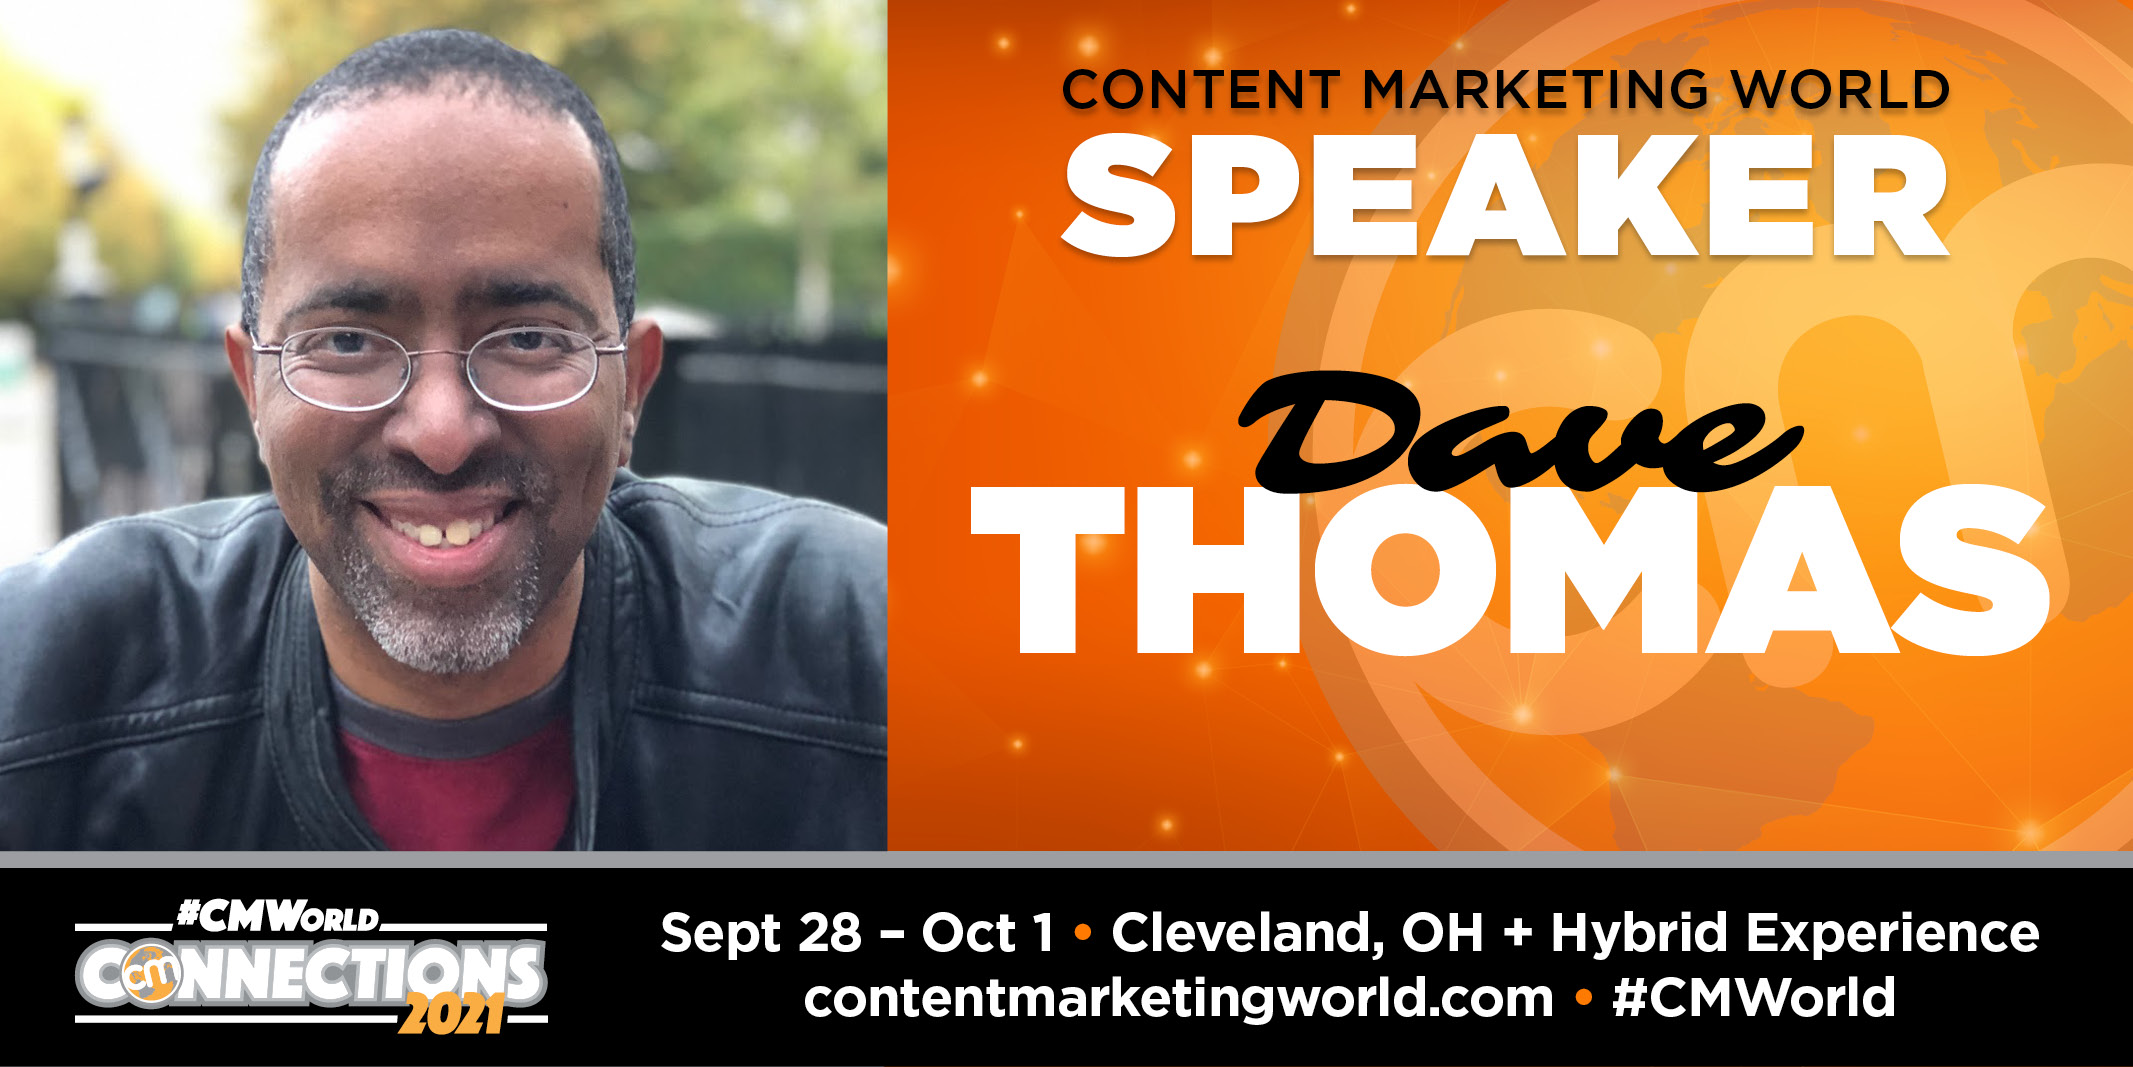 Banner announcing David Dylan Thomas as a speaker at Content Marketing World event